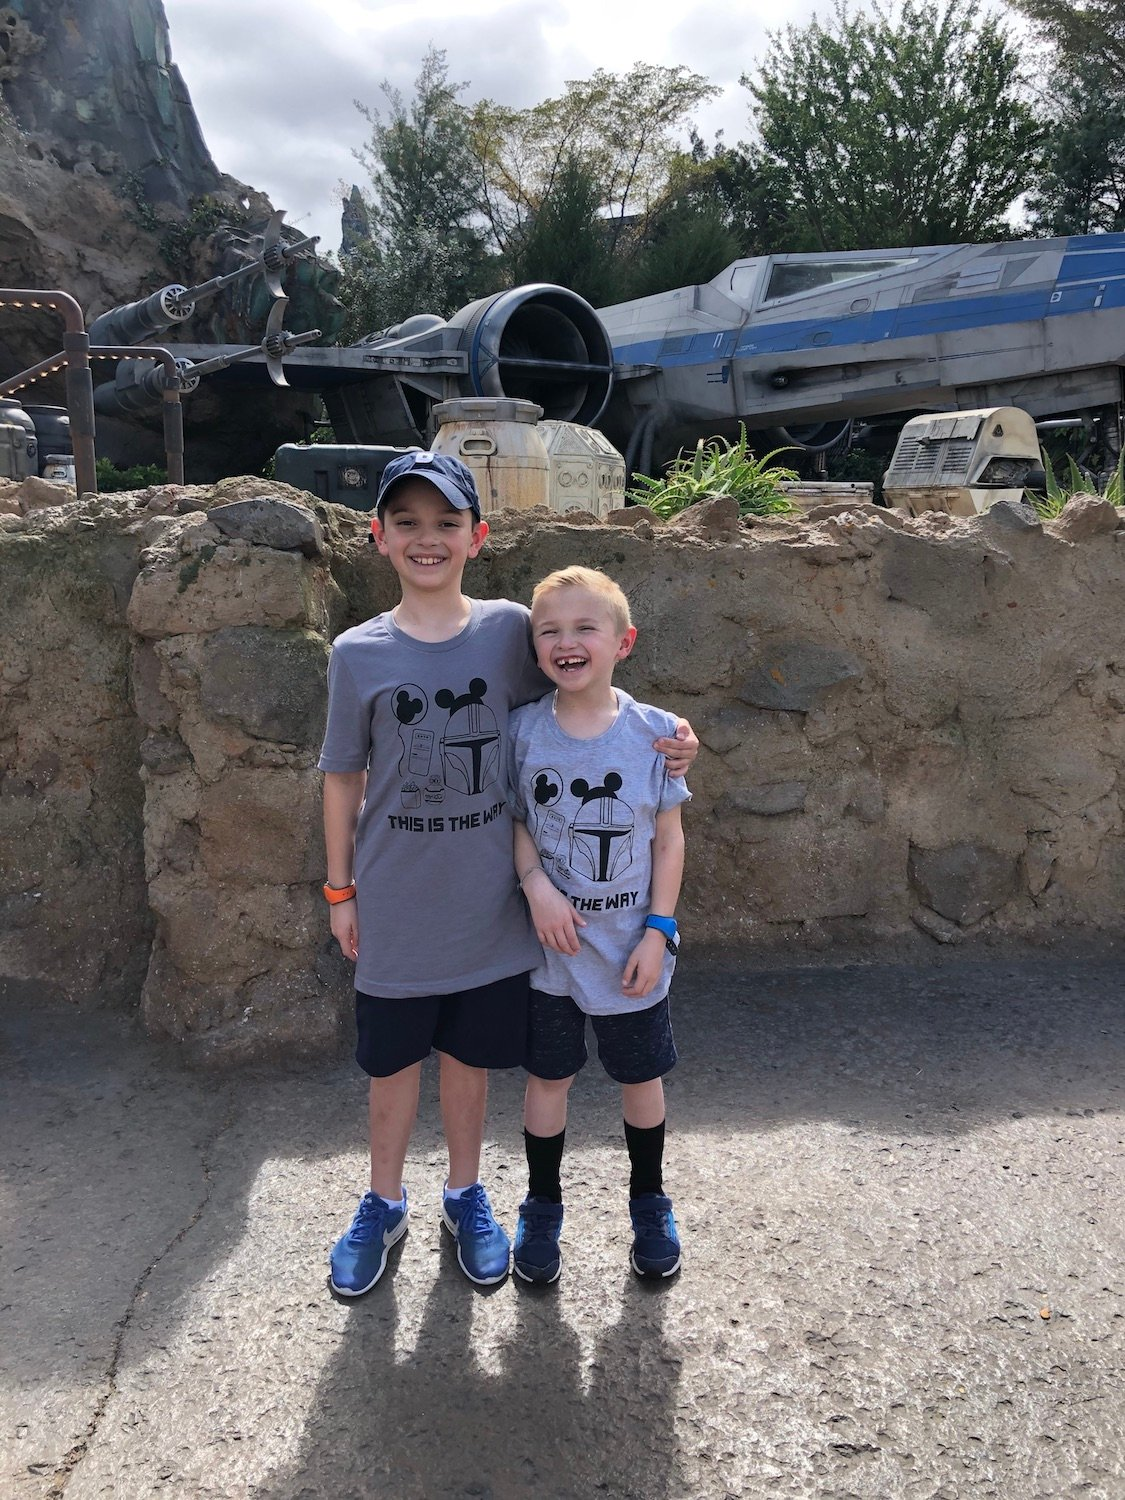 cute disney world outfits boys at star wars land in disney world